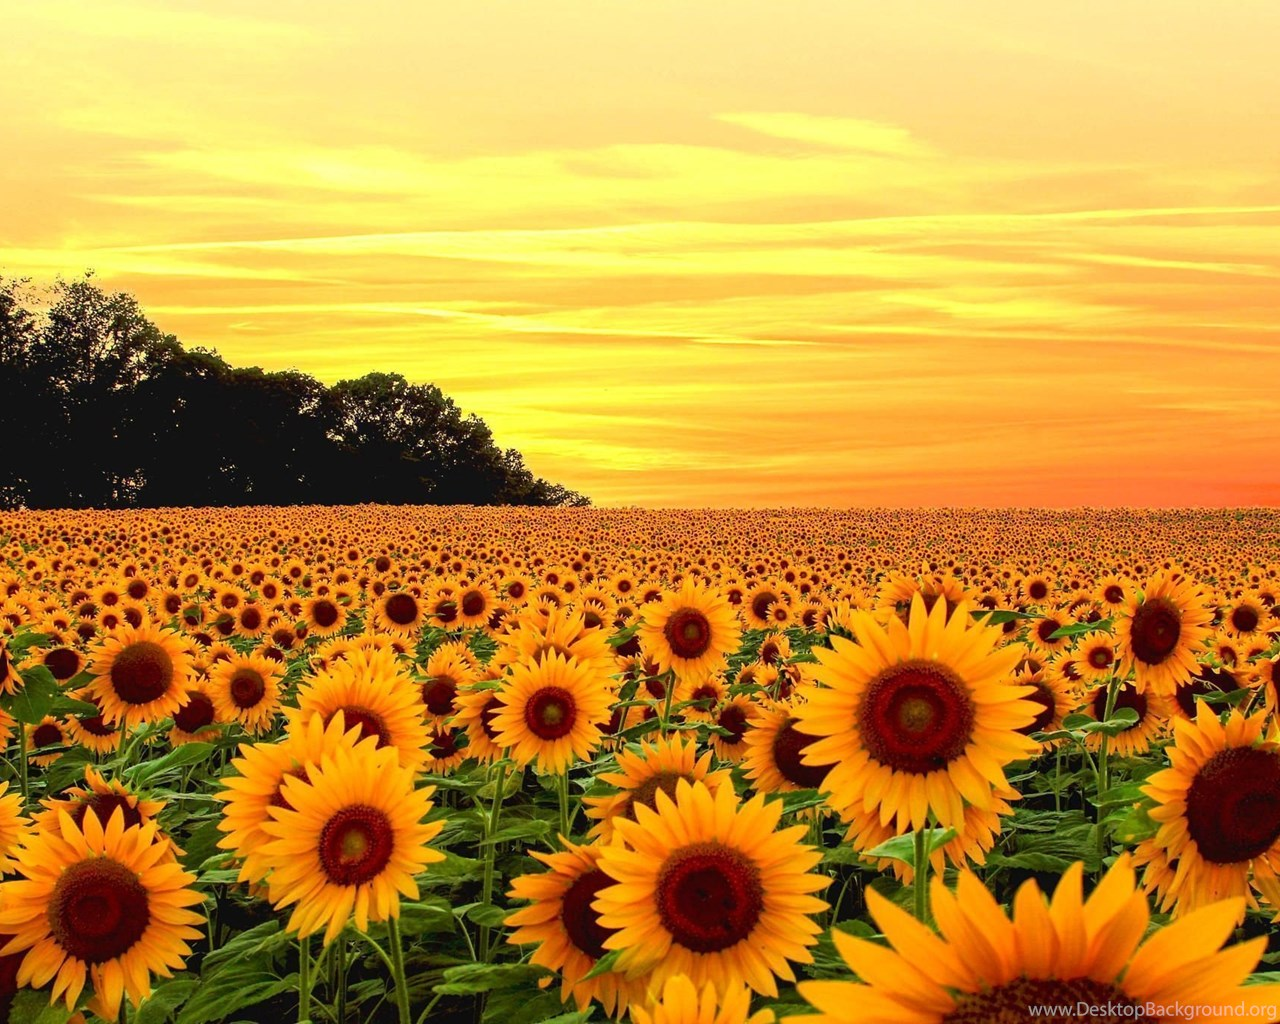 Download Sunflower Wallpaper Backgrounds Desktop Background